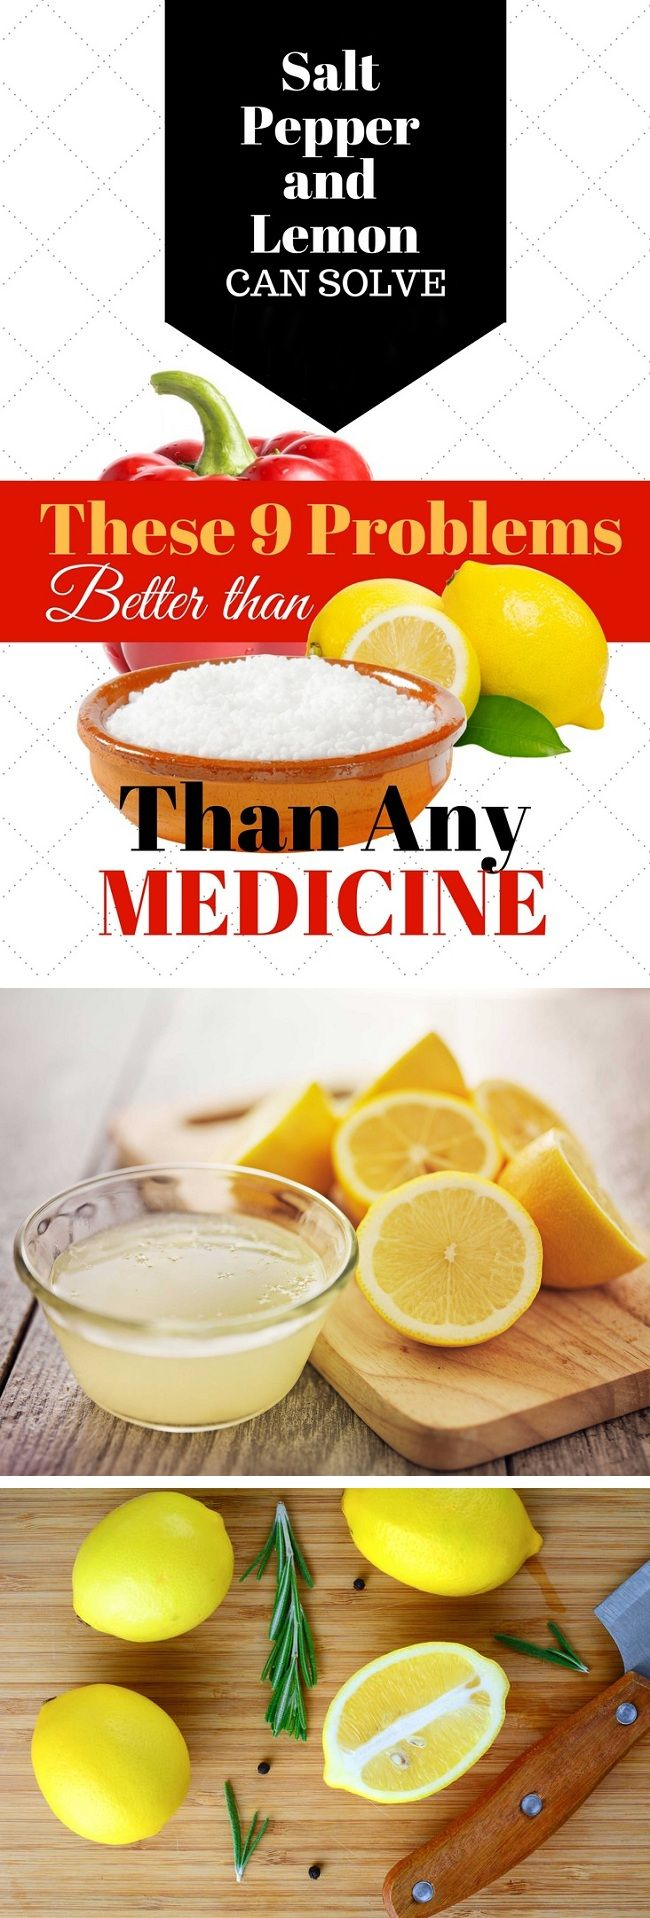 Salt, Pepper and Lemon Can Solve These 9 Problems Better Than Any Medicine